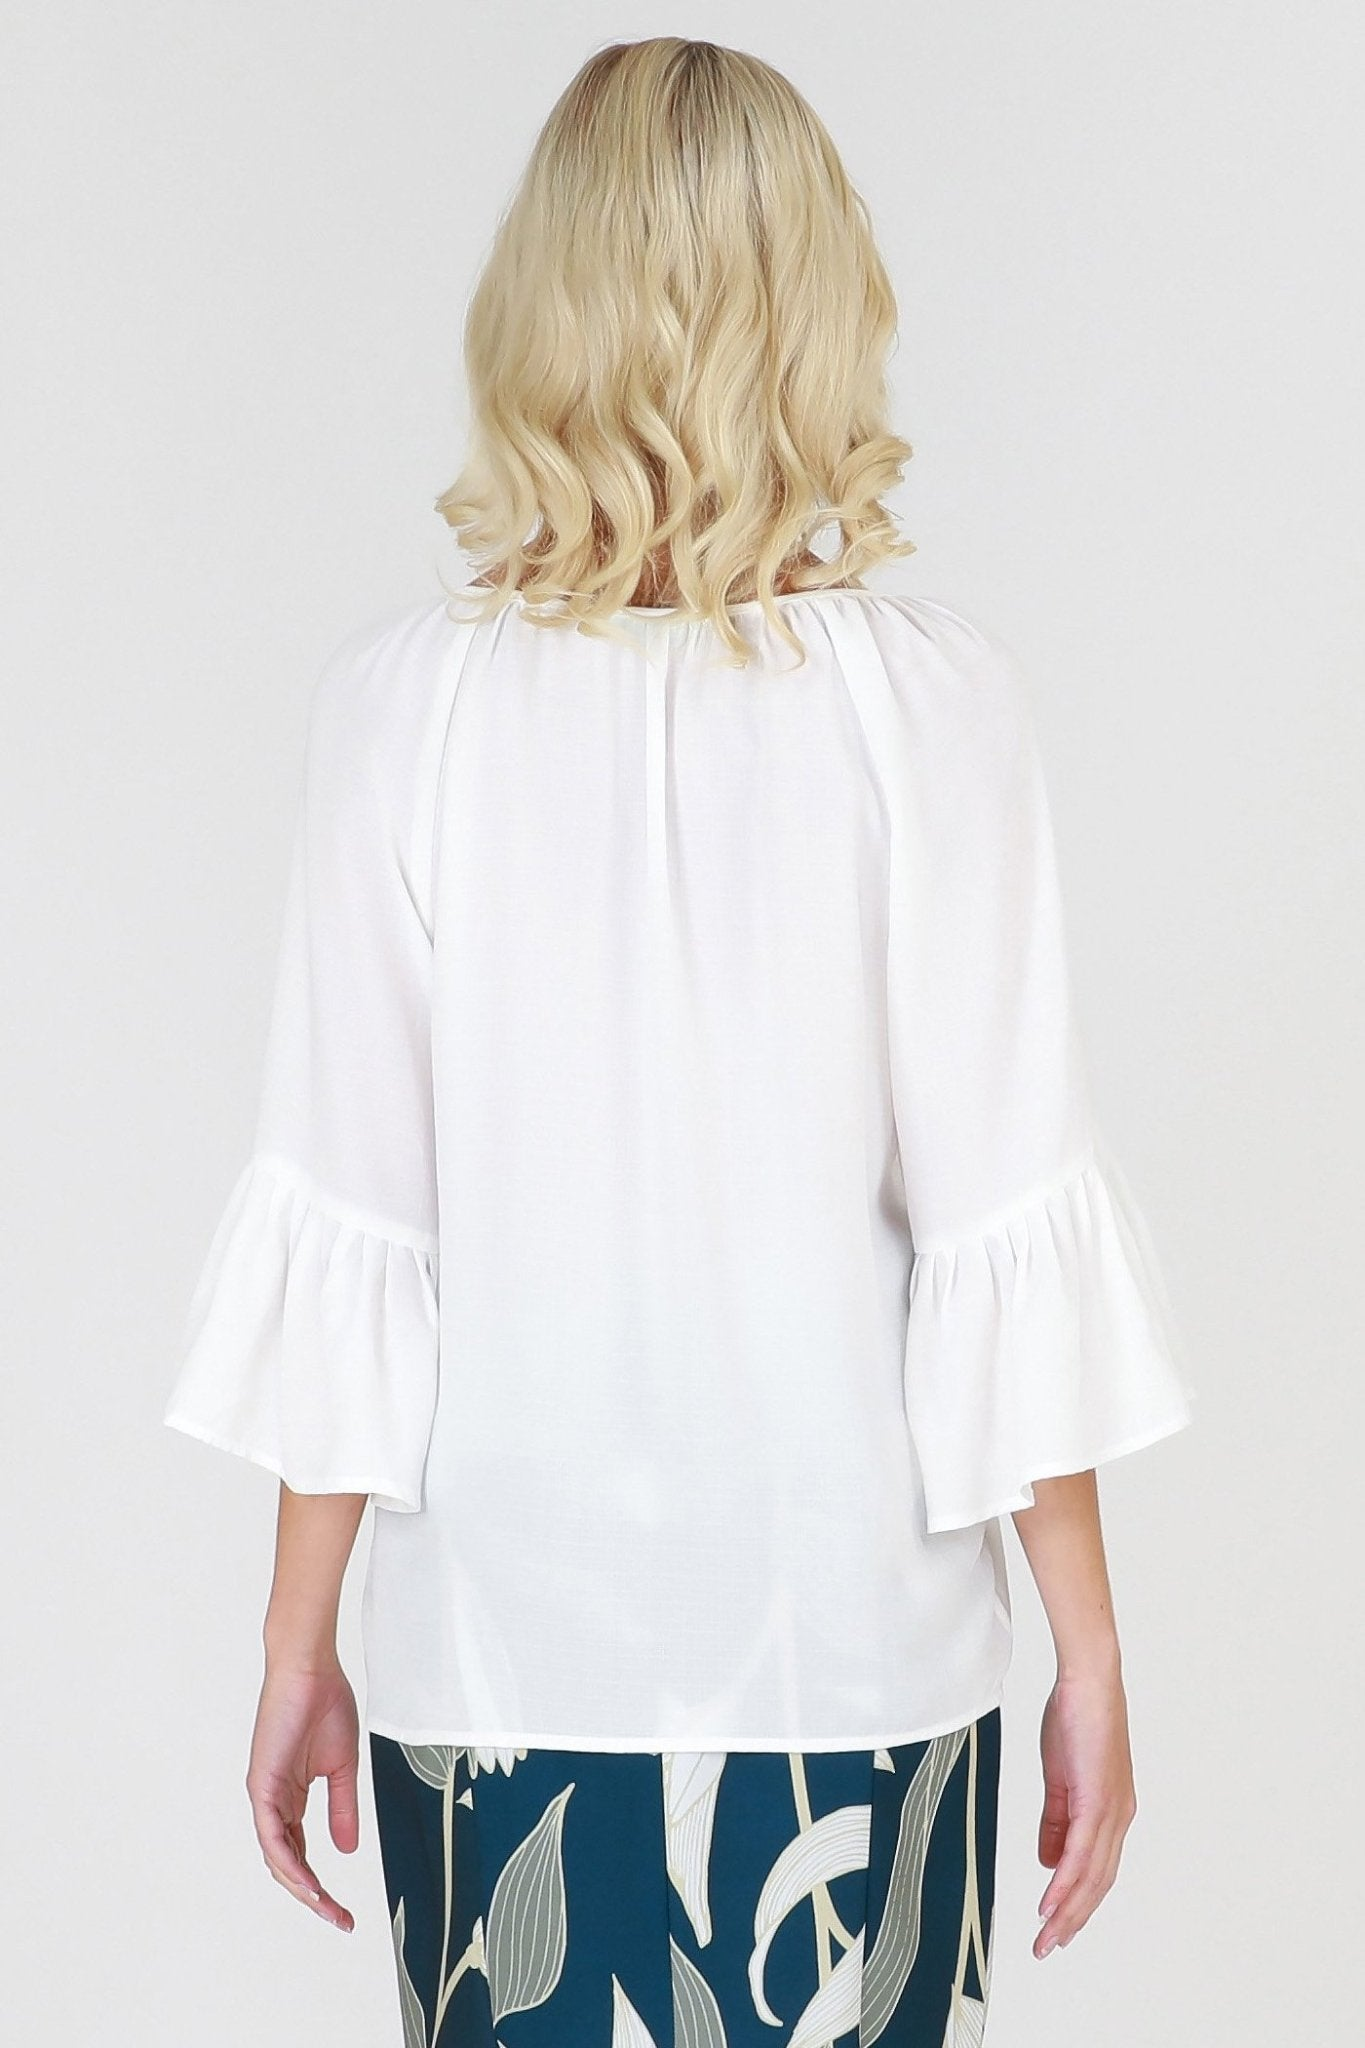 3RD Love Vivid White Lace Pleated Bell Sleeve Top in Ivory - Hey Sara